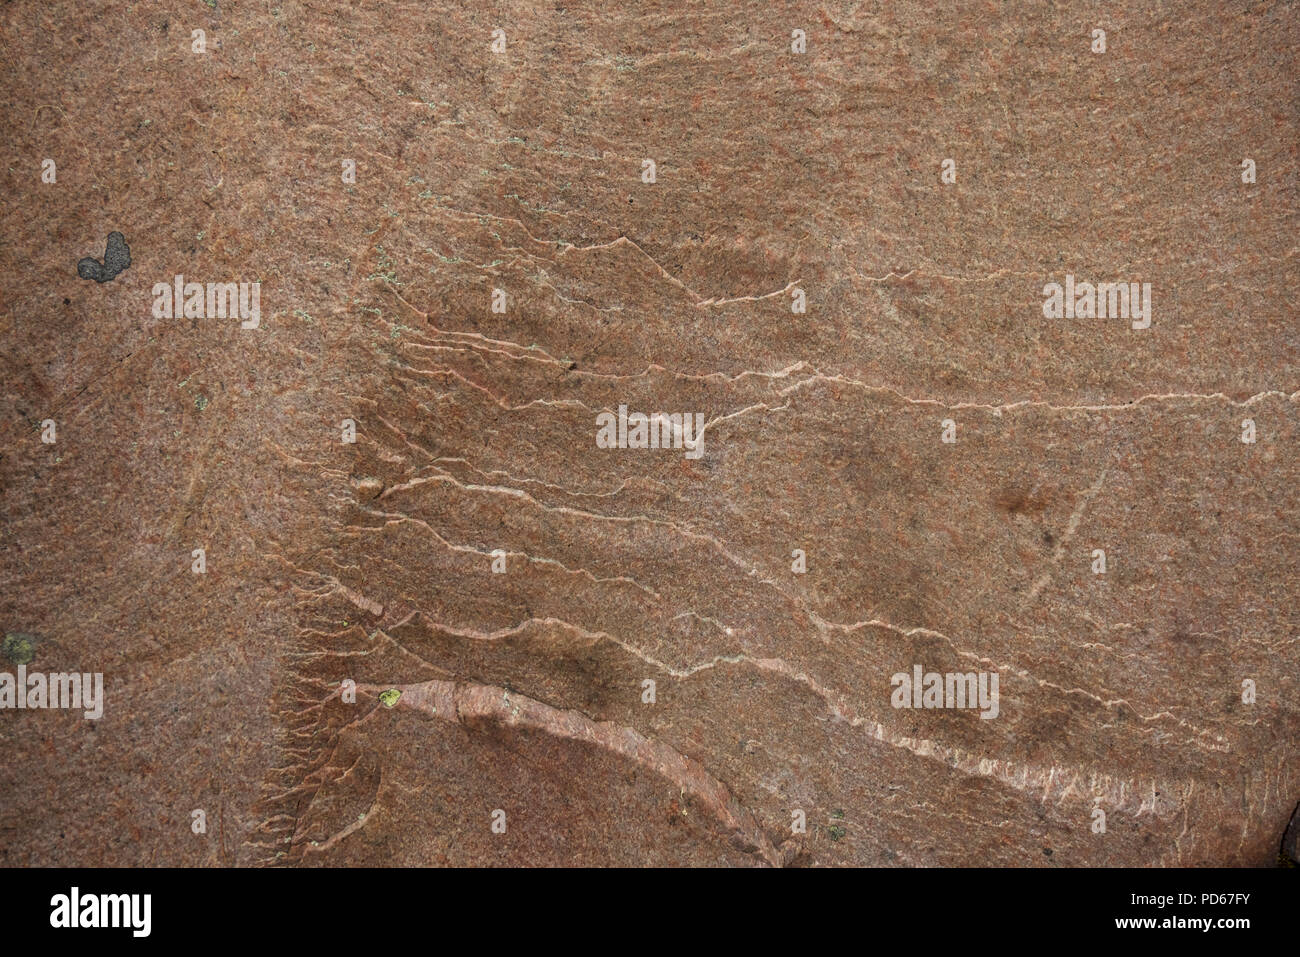 Pink granite of the Canadian Shield, typical of the bedrock in Killarney Park, Ontario. - Stock Image